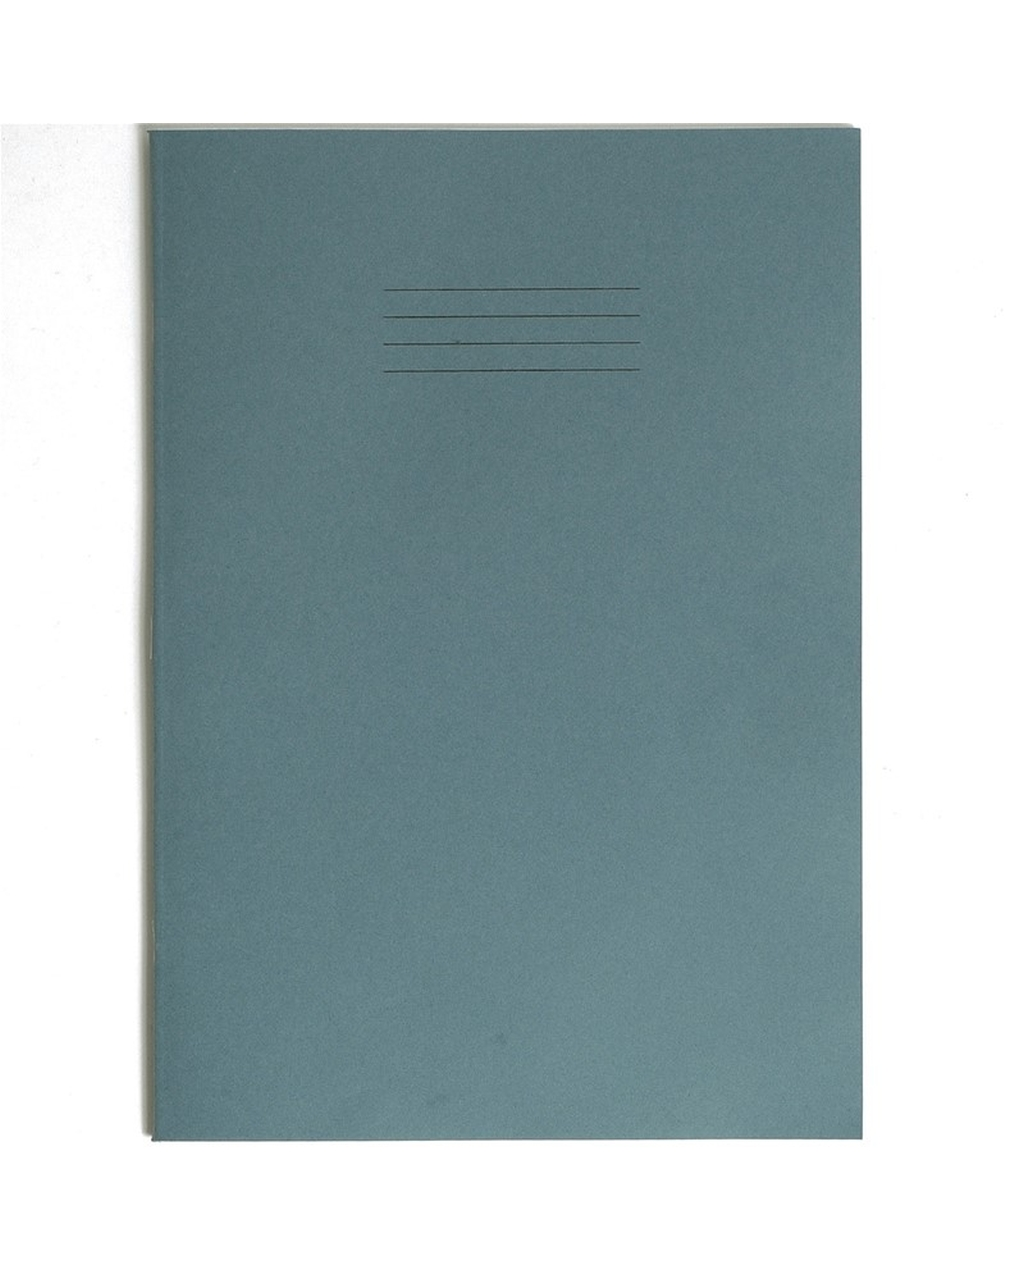 Exercise Book A4+ size (330 x 250mm) Light Blue Cover 12mm Ruled 40 Pages